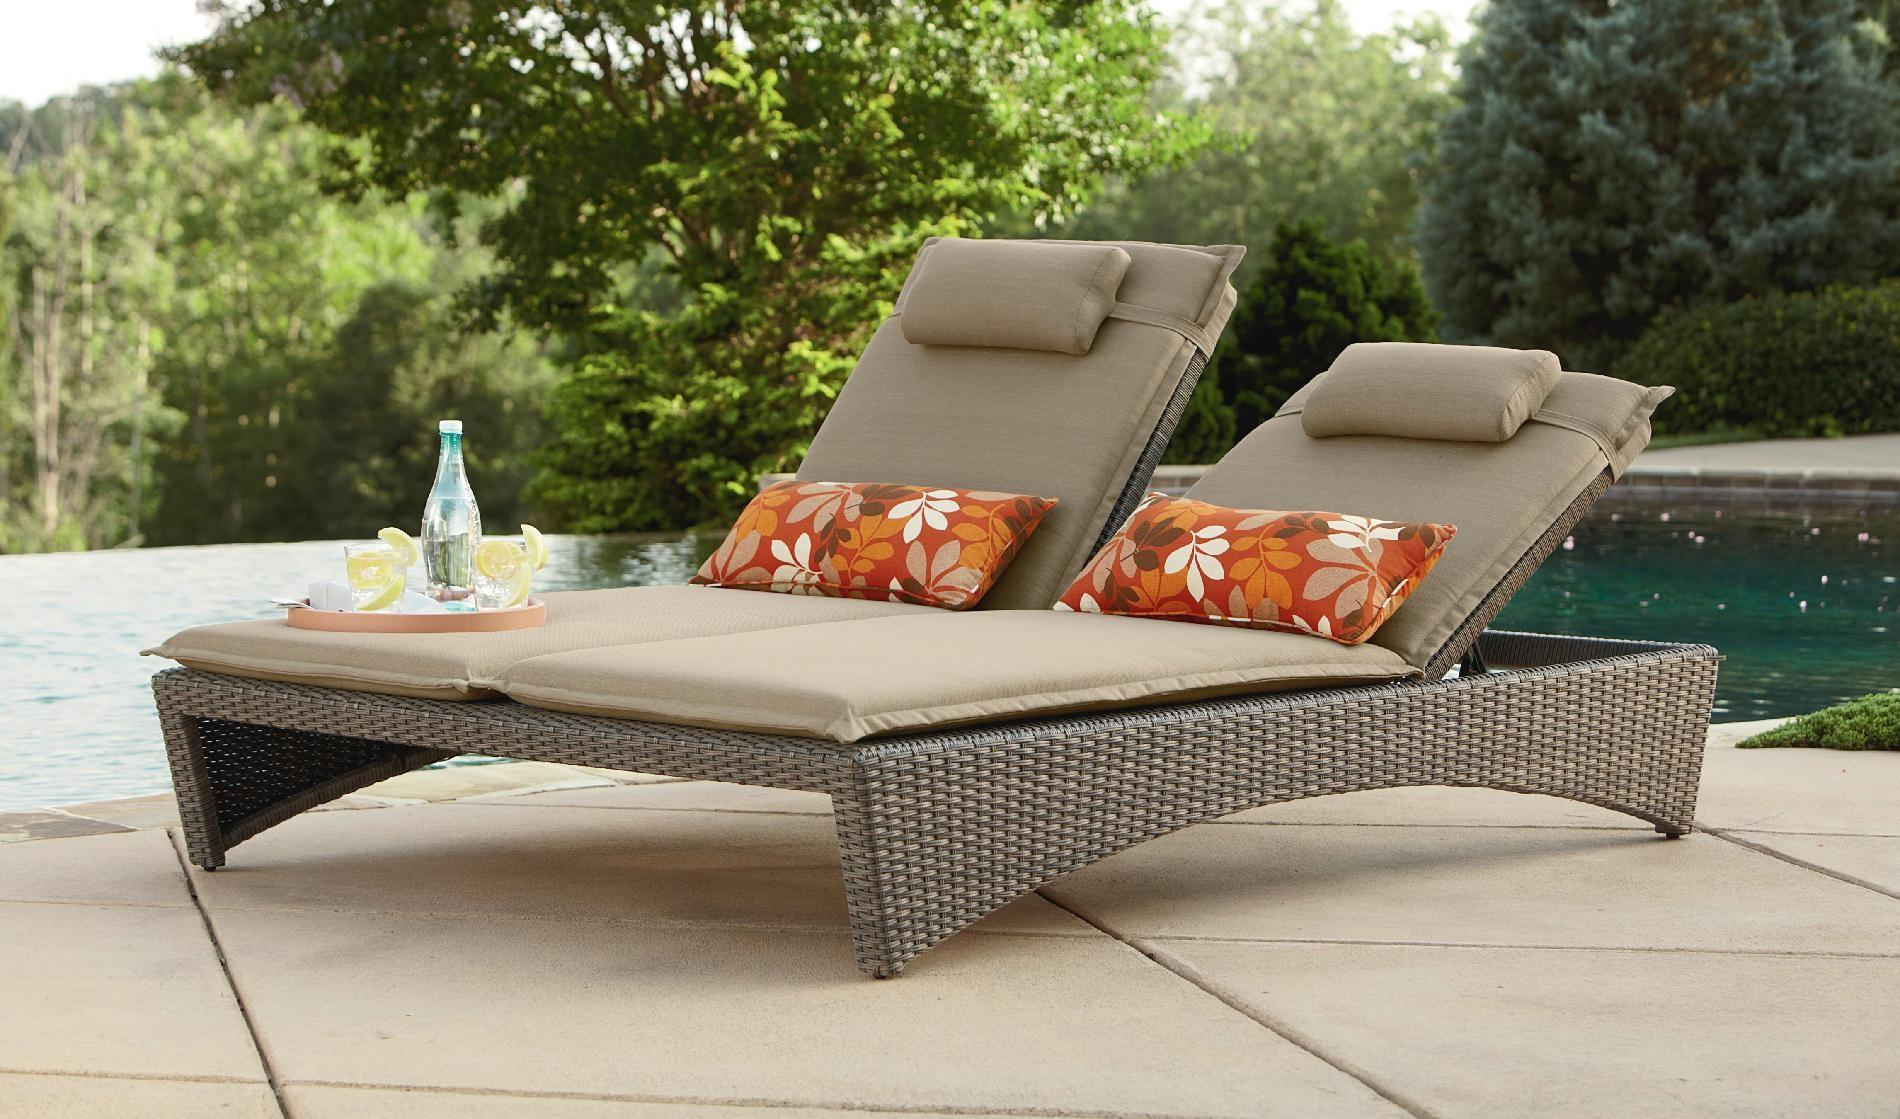 Patio Chaise Lounge Must Have Furniture Your